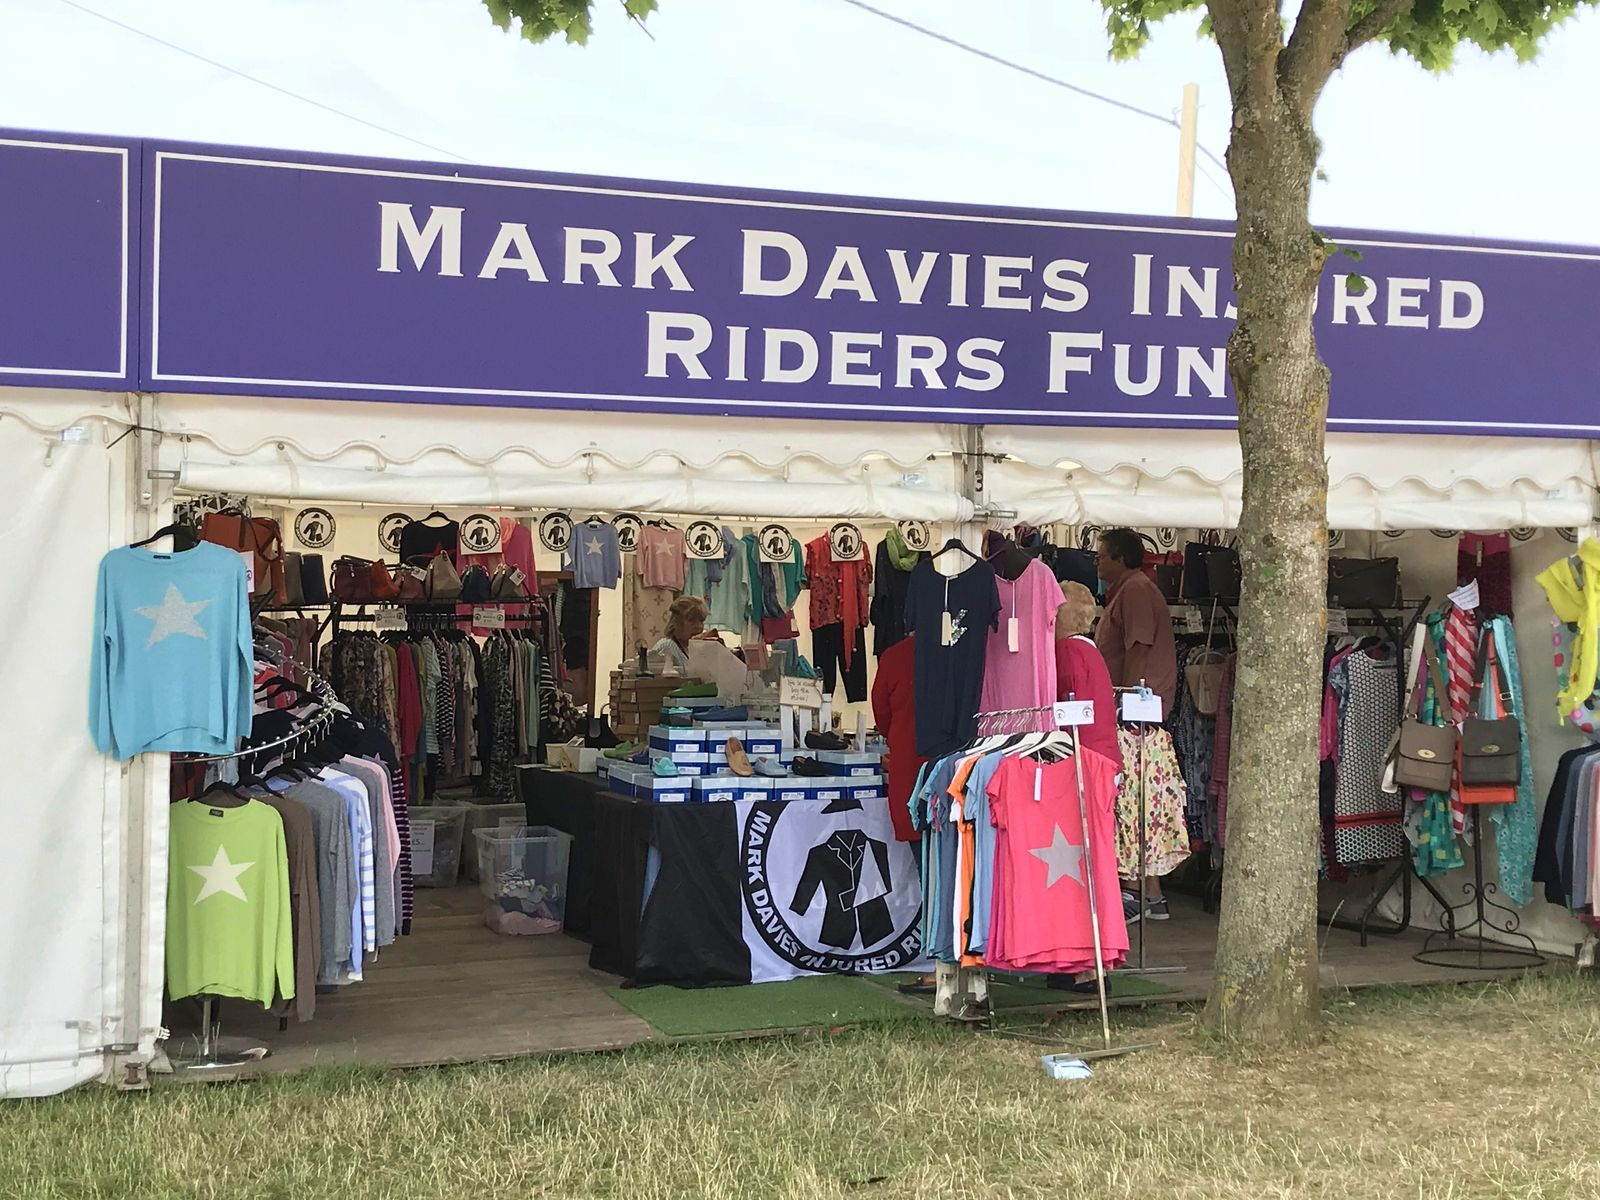 Trade Stands Burghley Horse Trials : Mark davies charity overwelmed by support at burghley